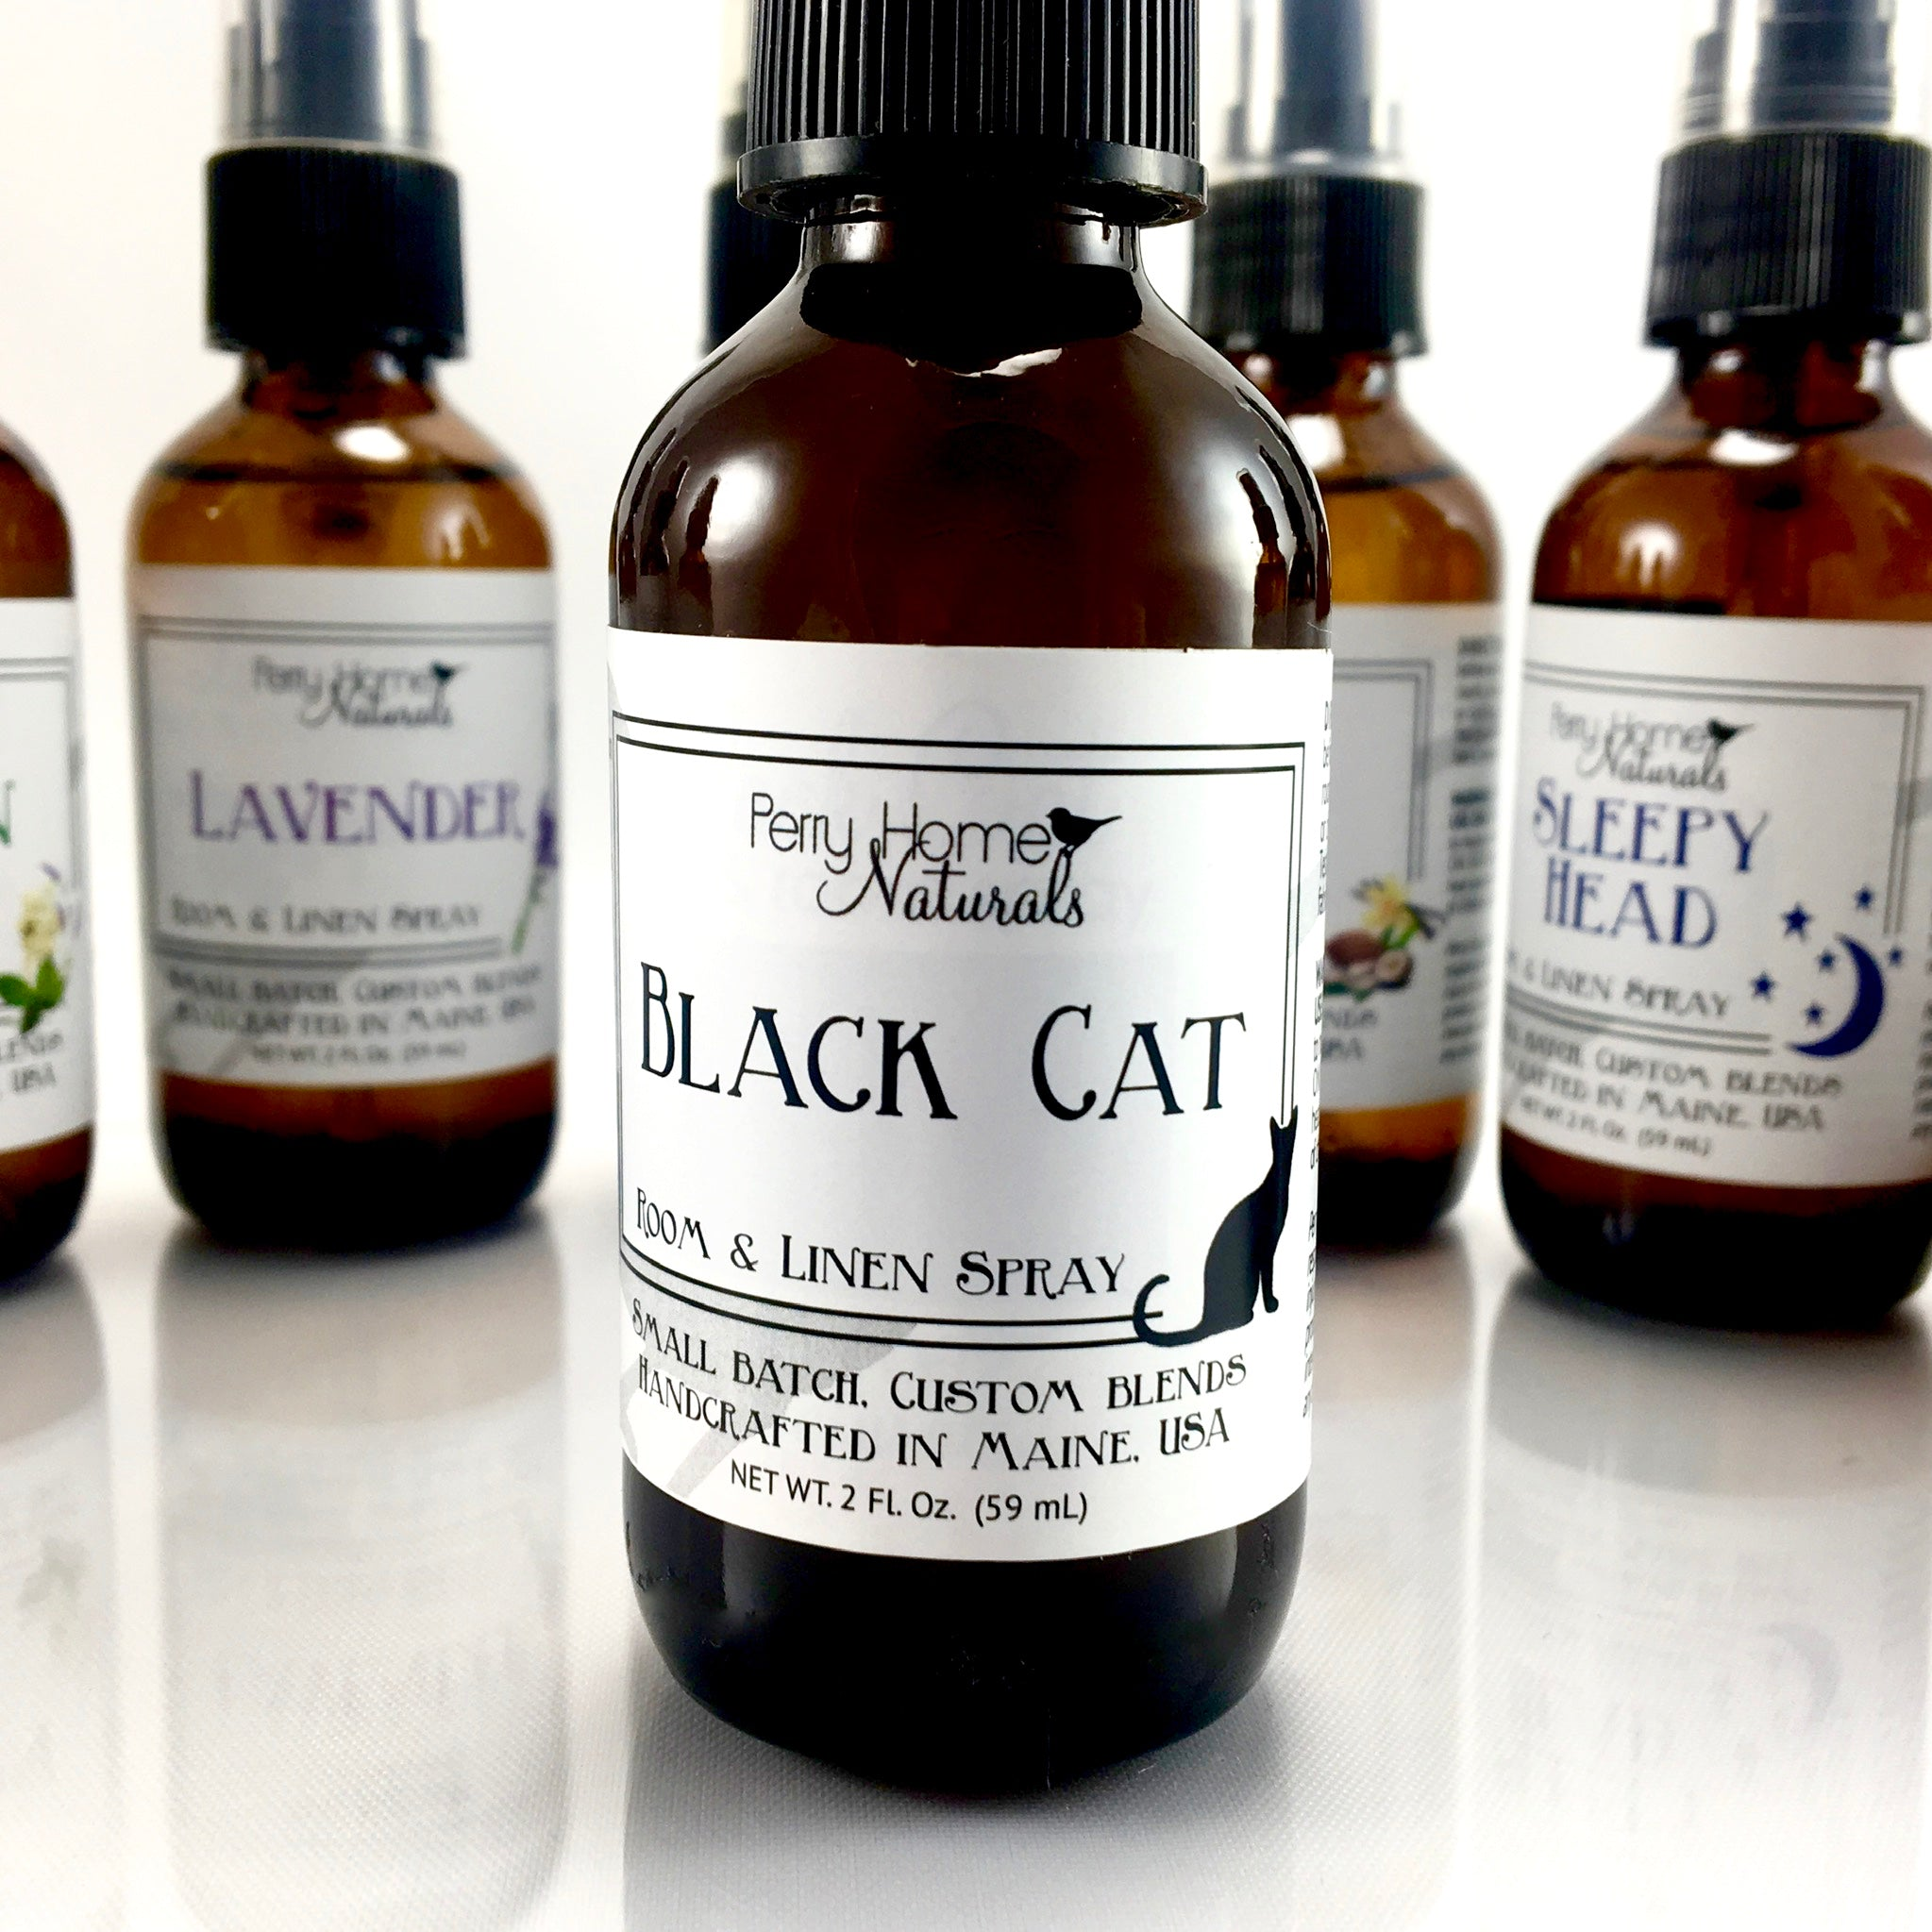 Black Cat Room & Linen Spray - Earthy and Spicy Natural Air Freshener